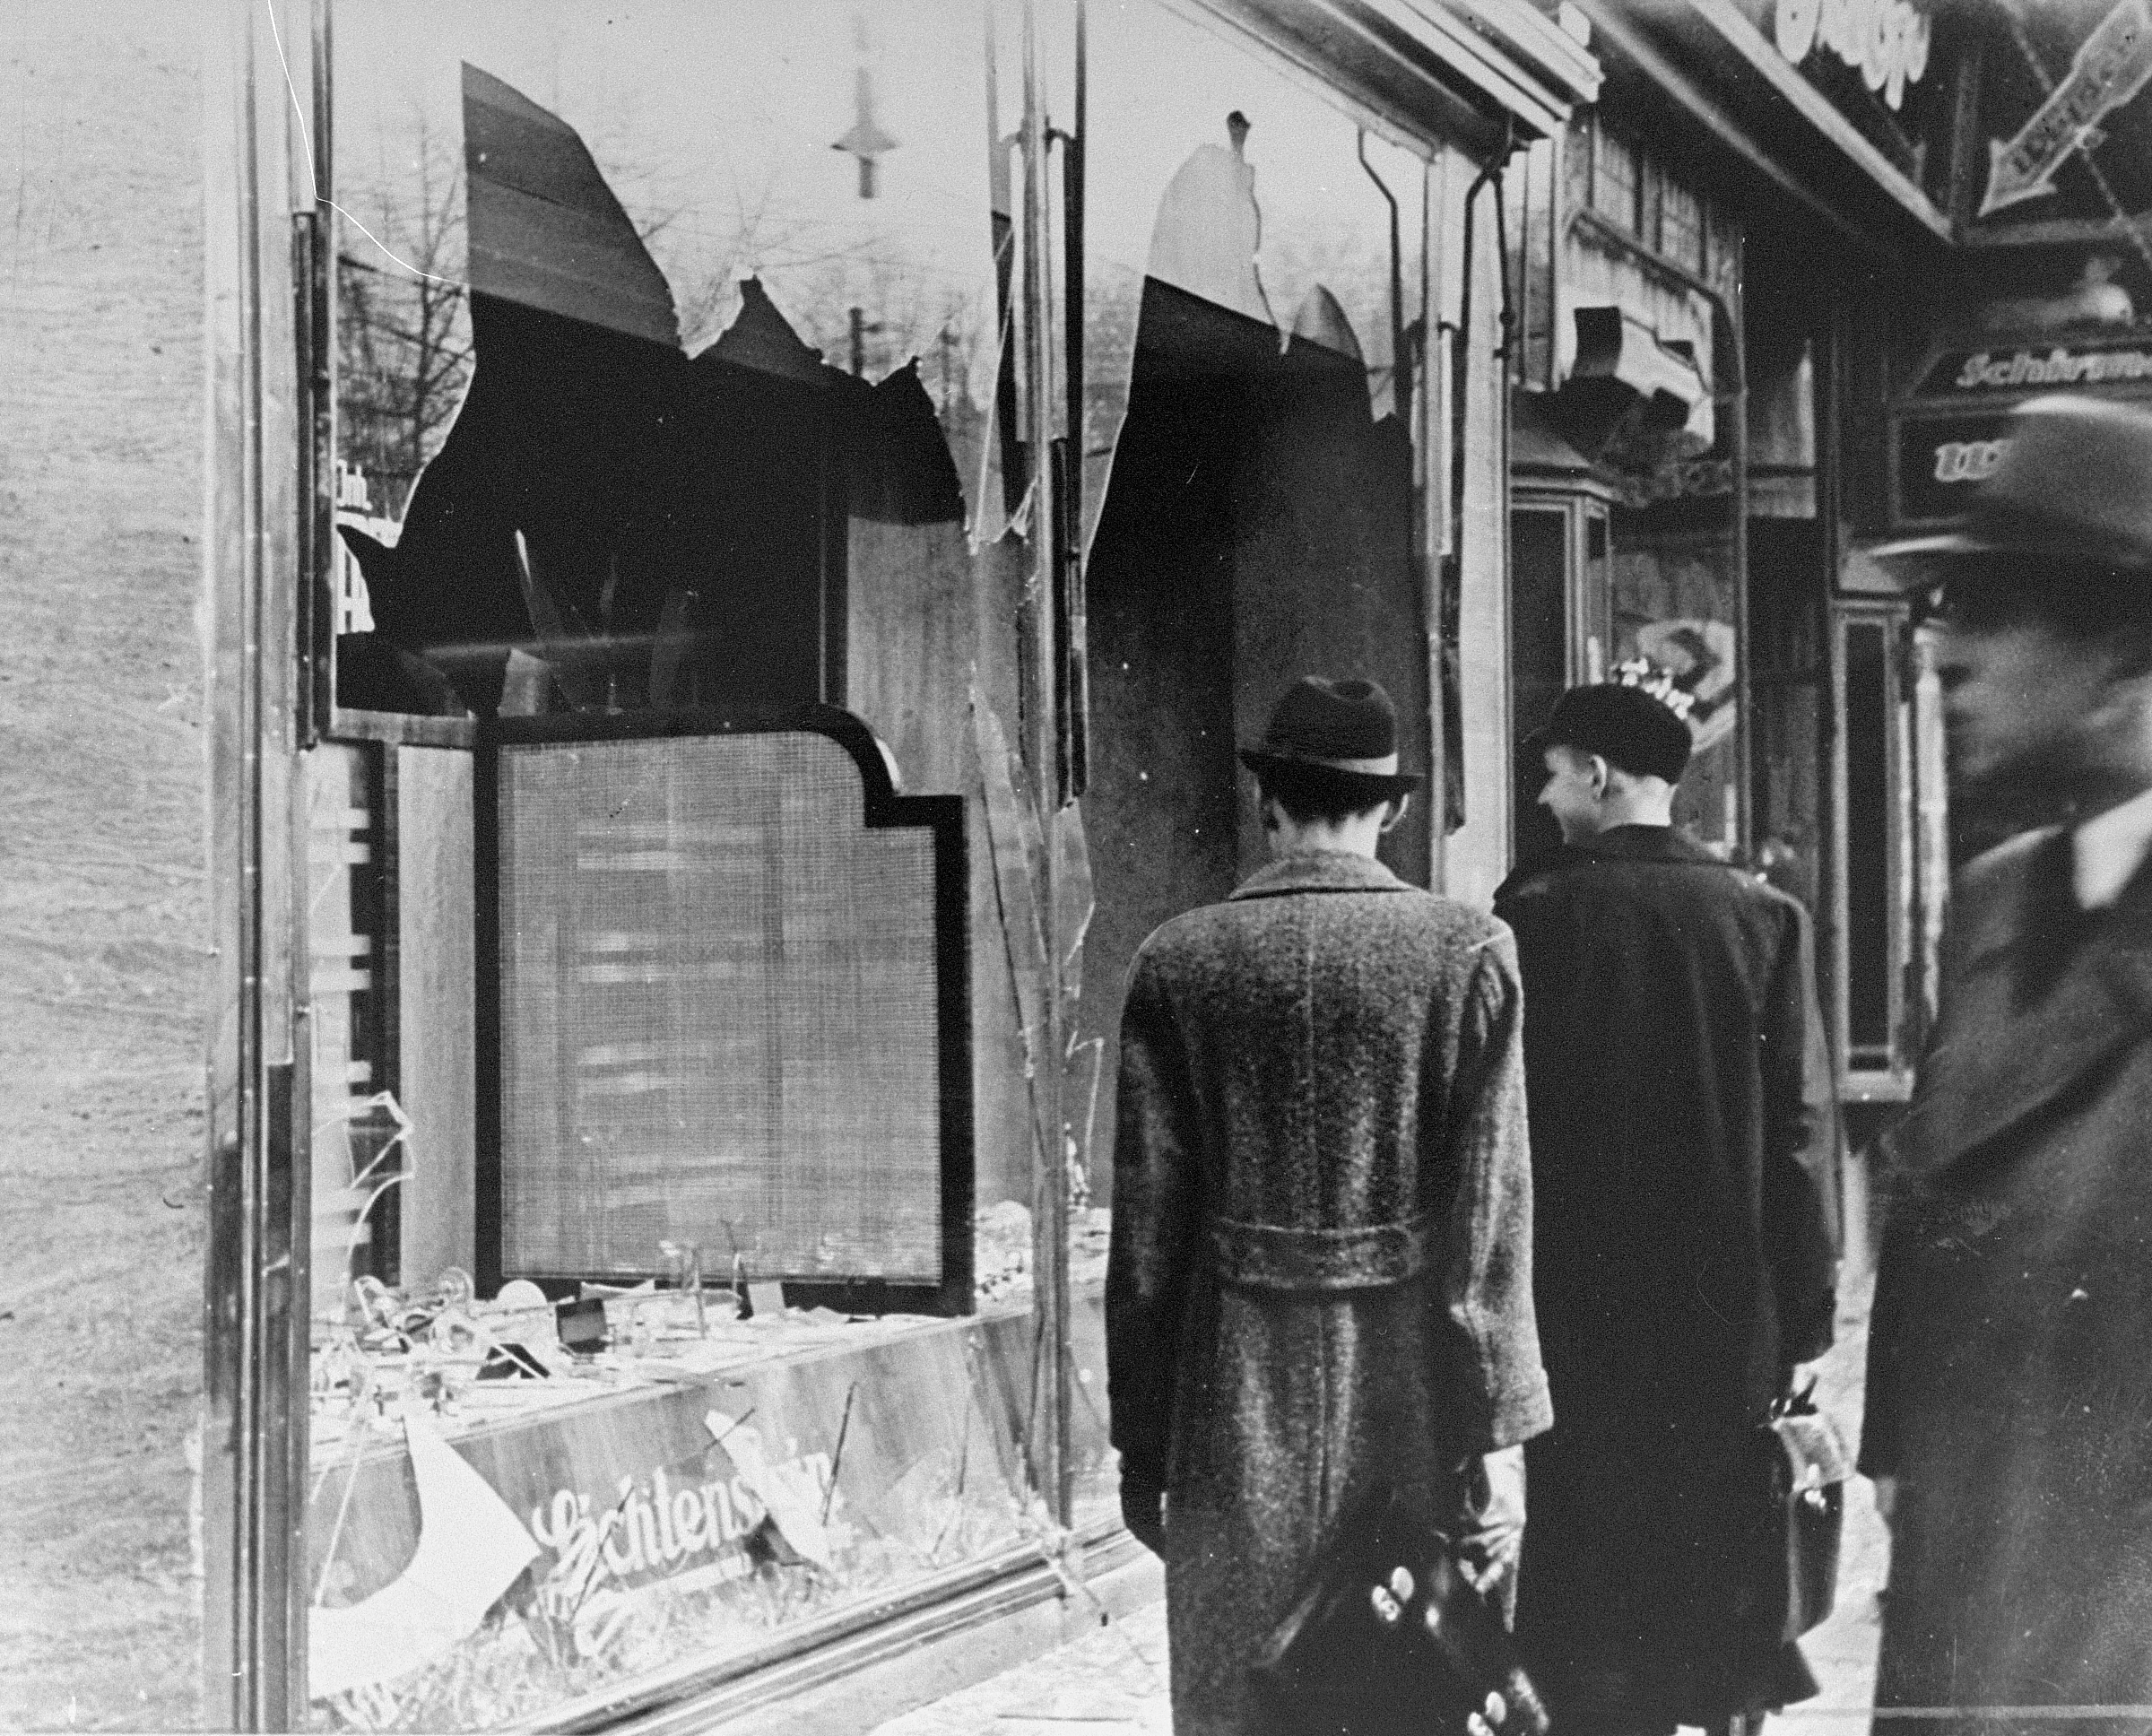 https://i0.wp.com/upload.wikimedia.org/wikipedia/en/2/2b/Germans_walk_by_a_Jewish_business_destroyed_on_Kristallnacht.jpg